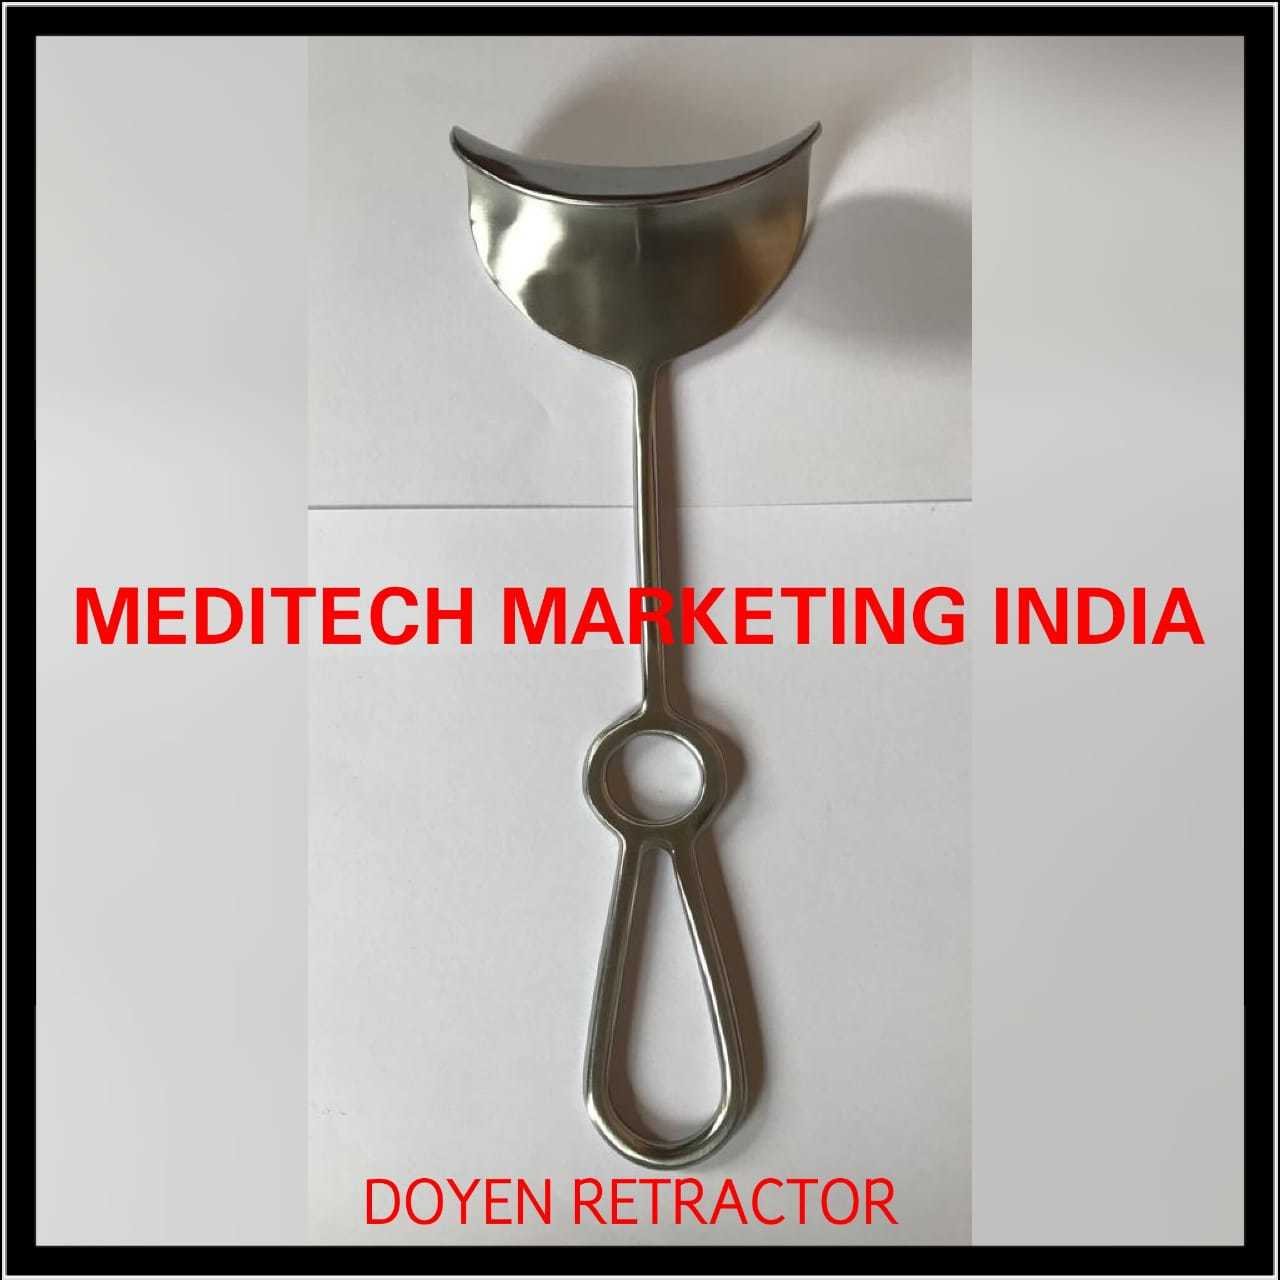 DOYEN RETRACTOR